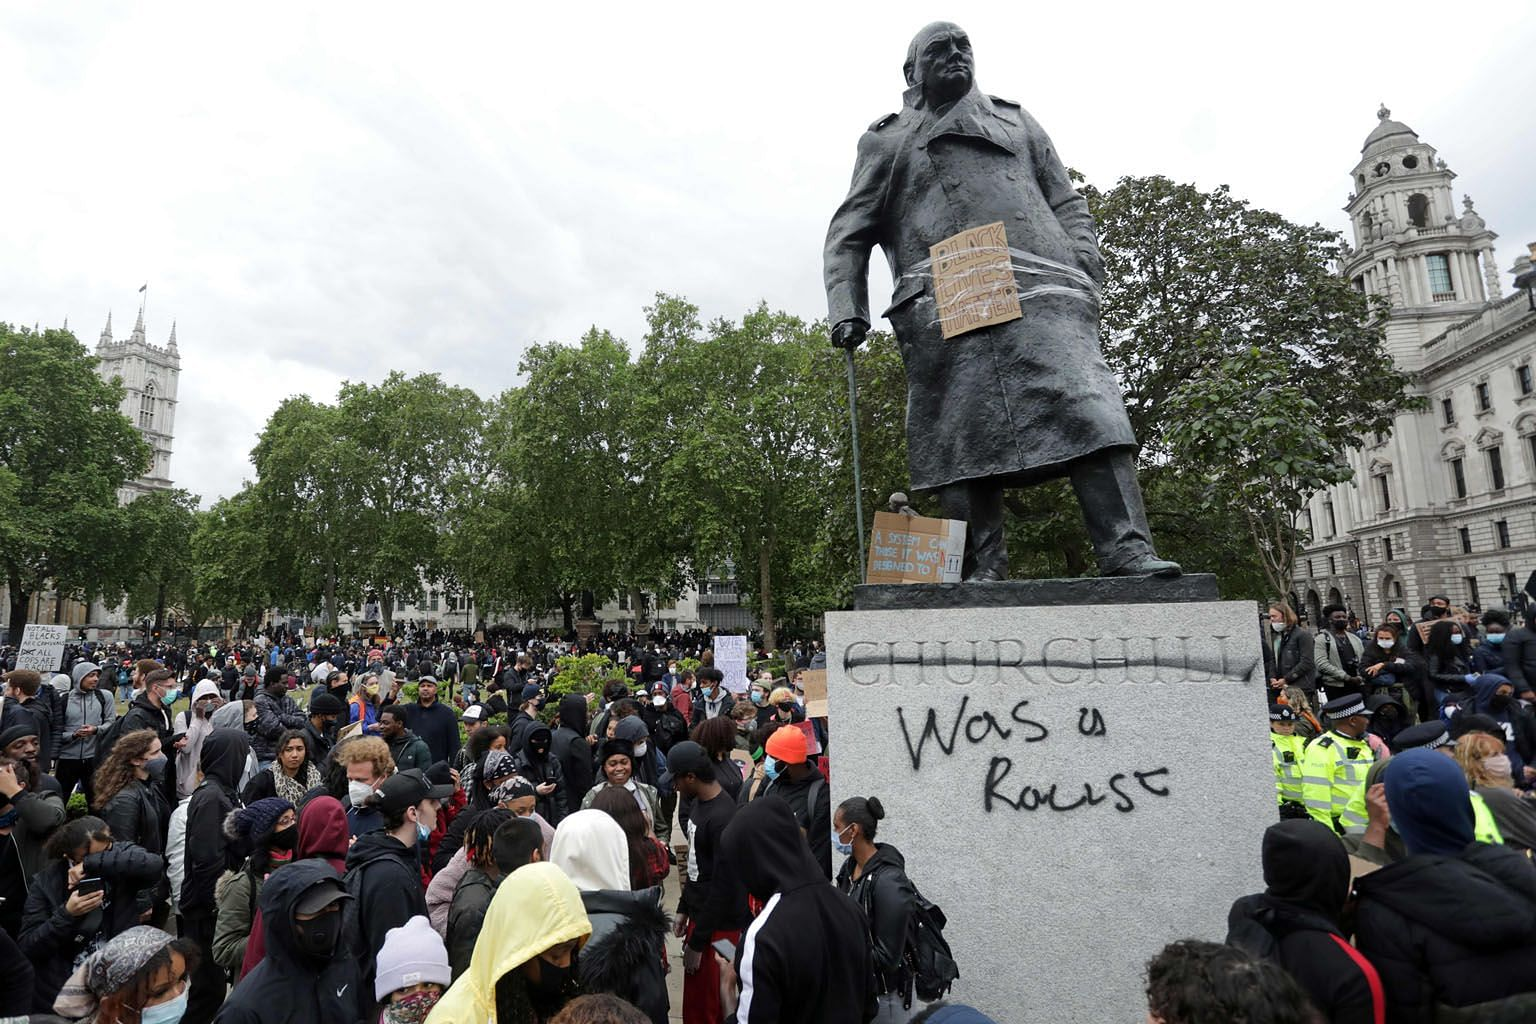 Graffiti scrawled on the statue of former British prime minister Winston Churchill in London earlier this month. PHOTO: AGENCE FRANCE-PRESSE